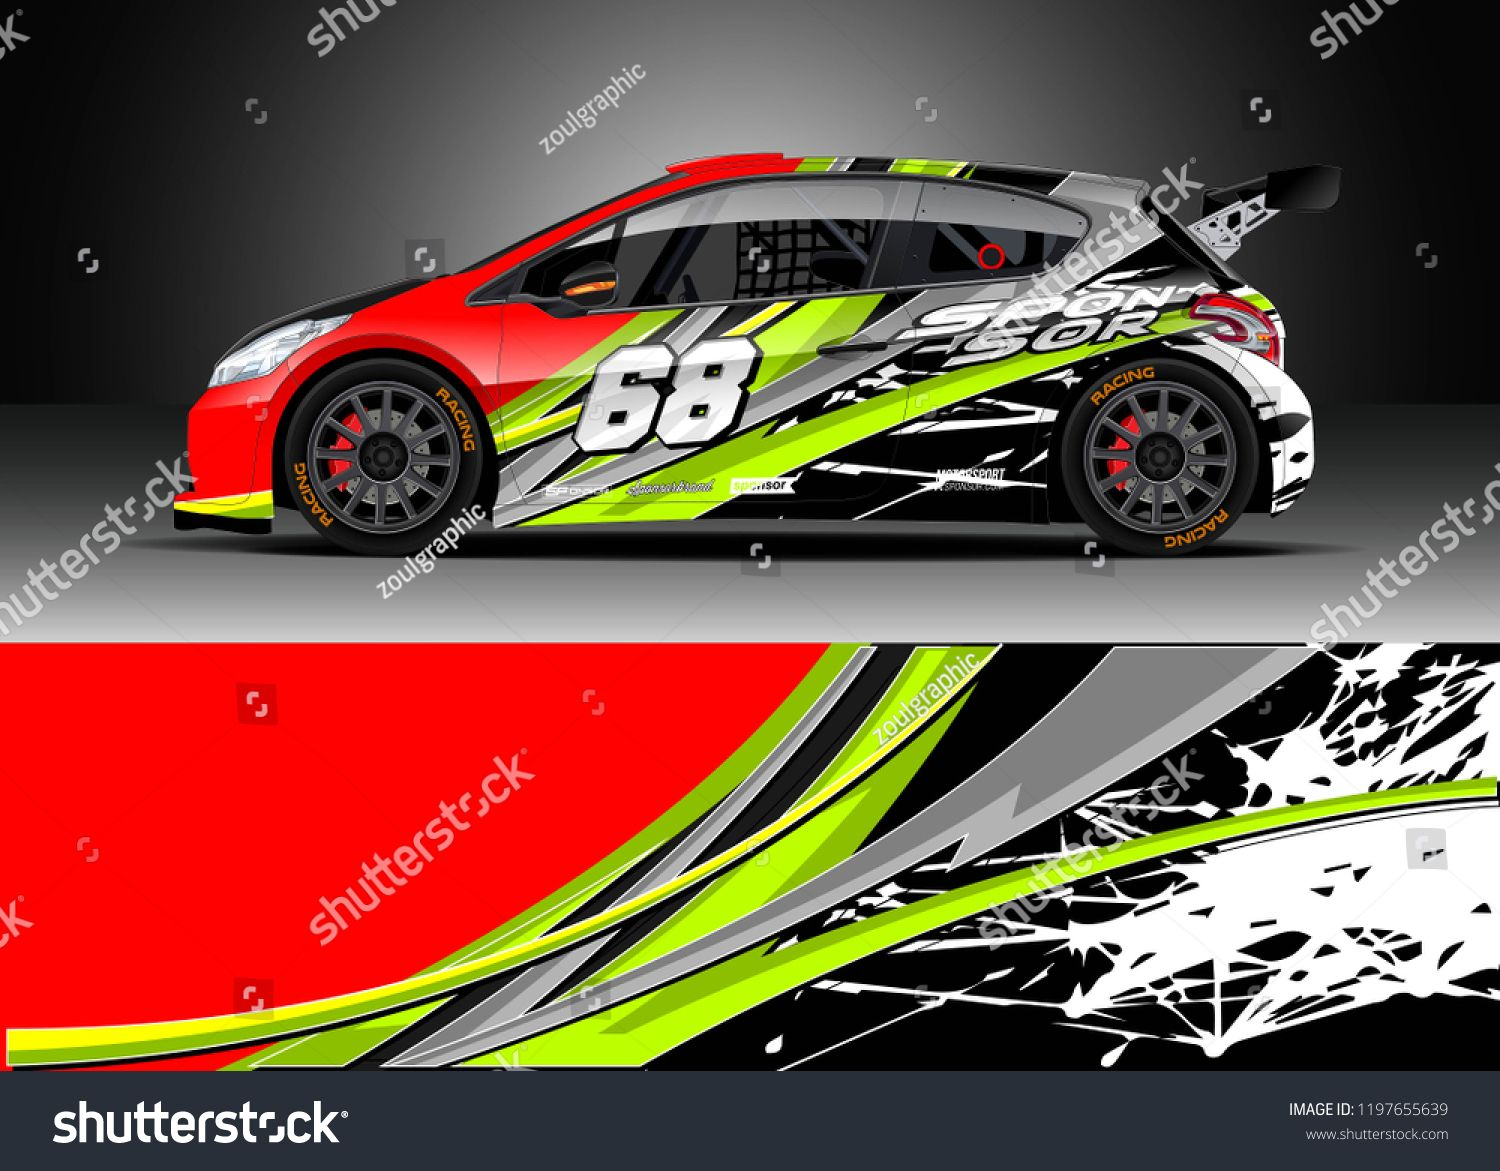 Graphic abstract stripe racing background kit designs for wrap vehicle race car rally adventure and livery